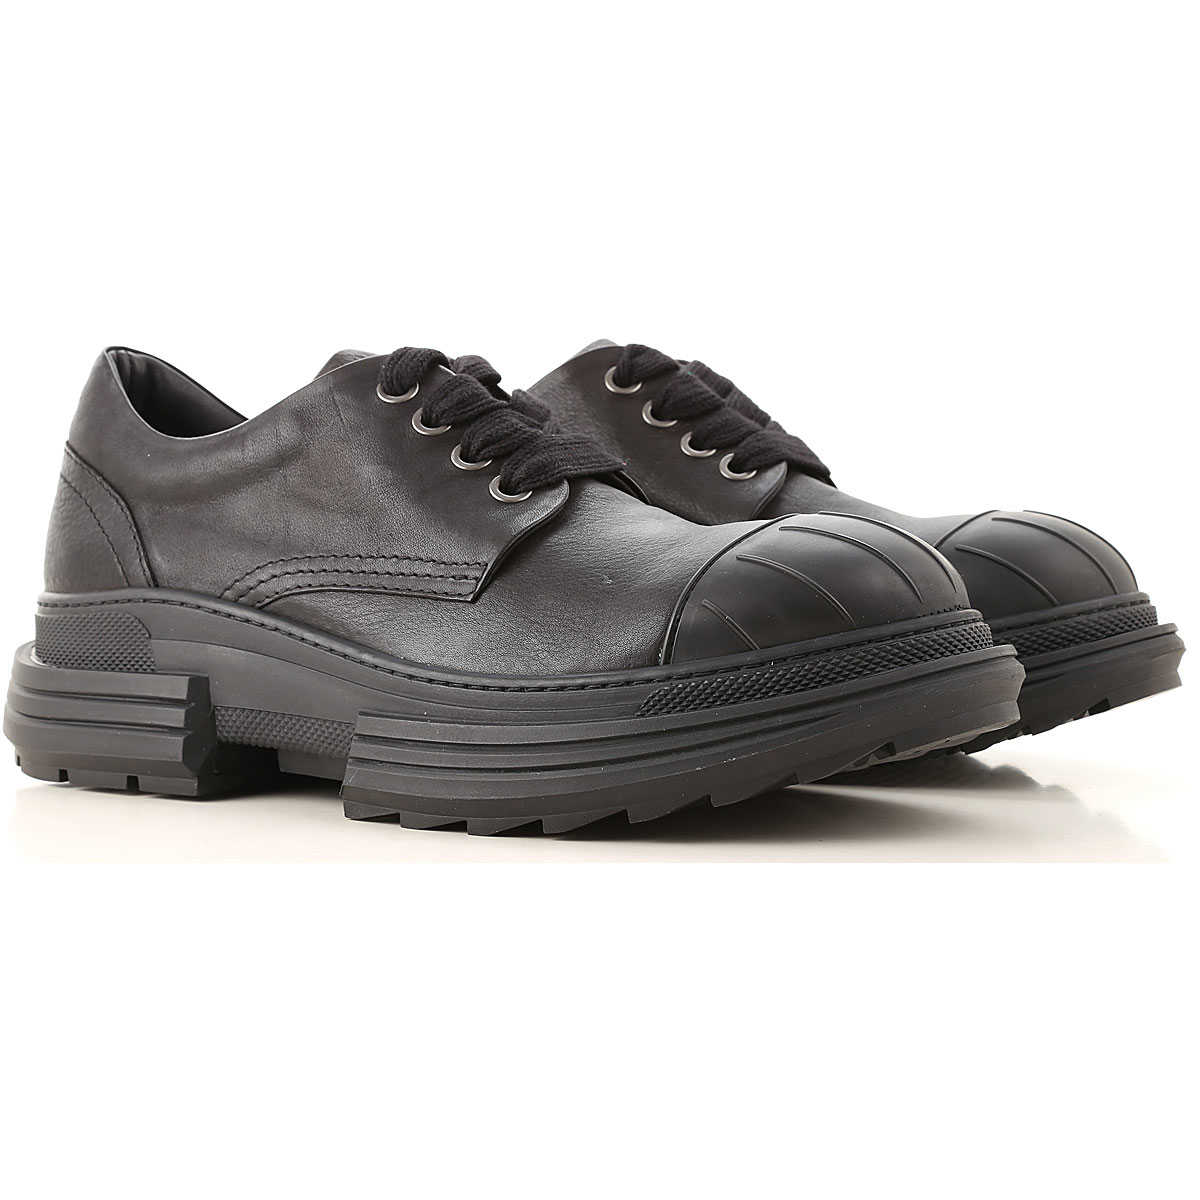 Beyond Lace Up Shoes for Men Oxfords Derbies and Brogues SE - GOOFASH